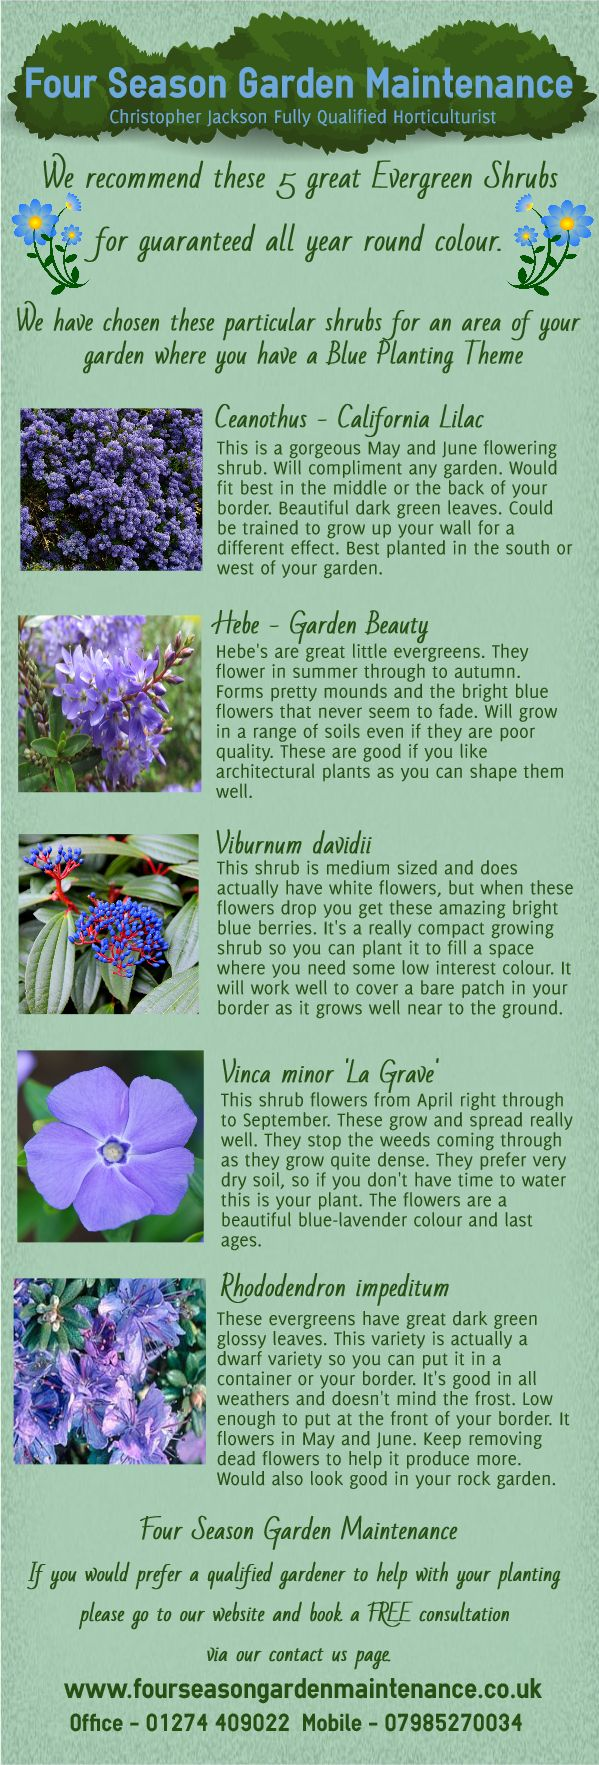 Your chosen color or size is sold out see below for eventual - Bradford Gardener Christopher Jackson Www Fourseasongardenmaintenance Co Uk Contact Our Web Page And